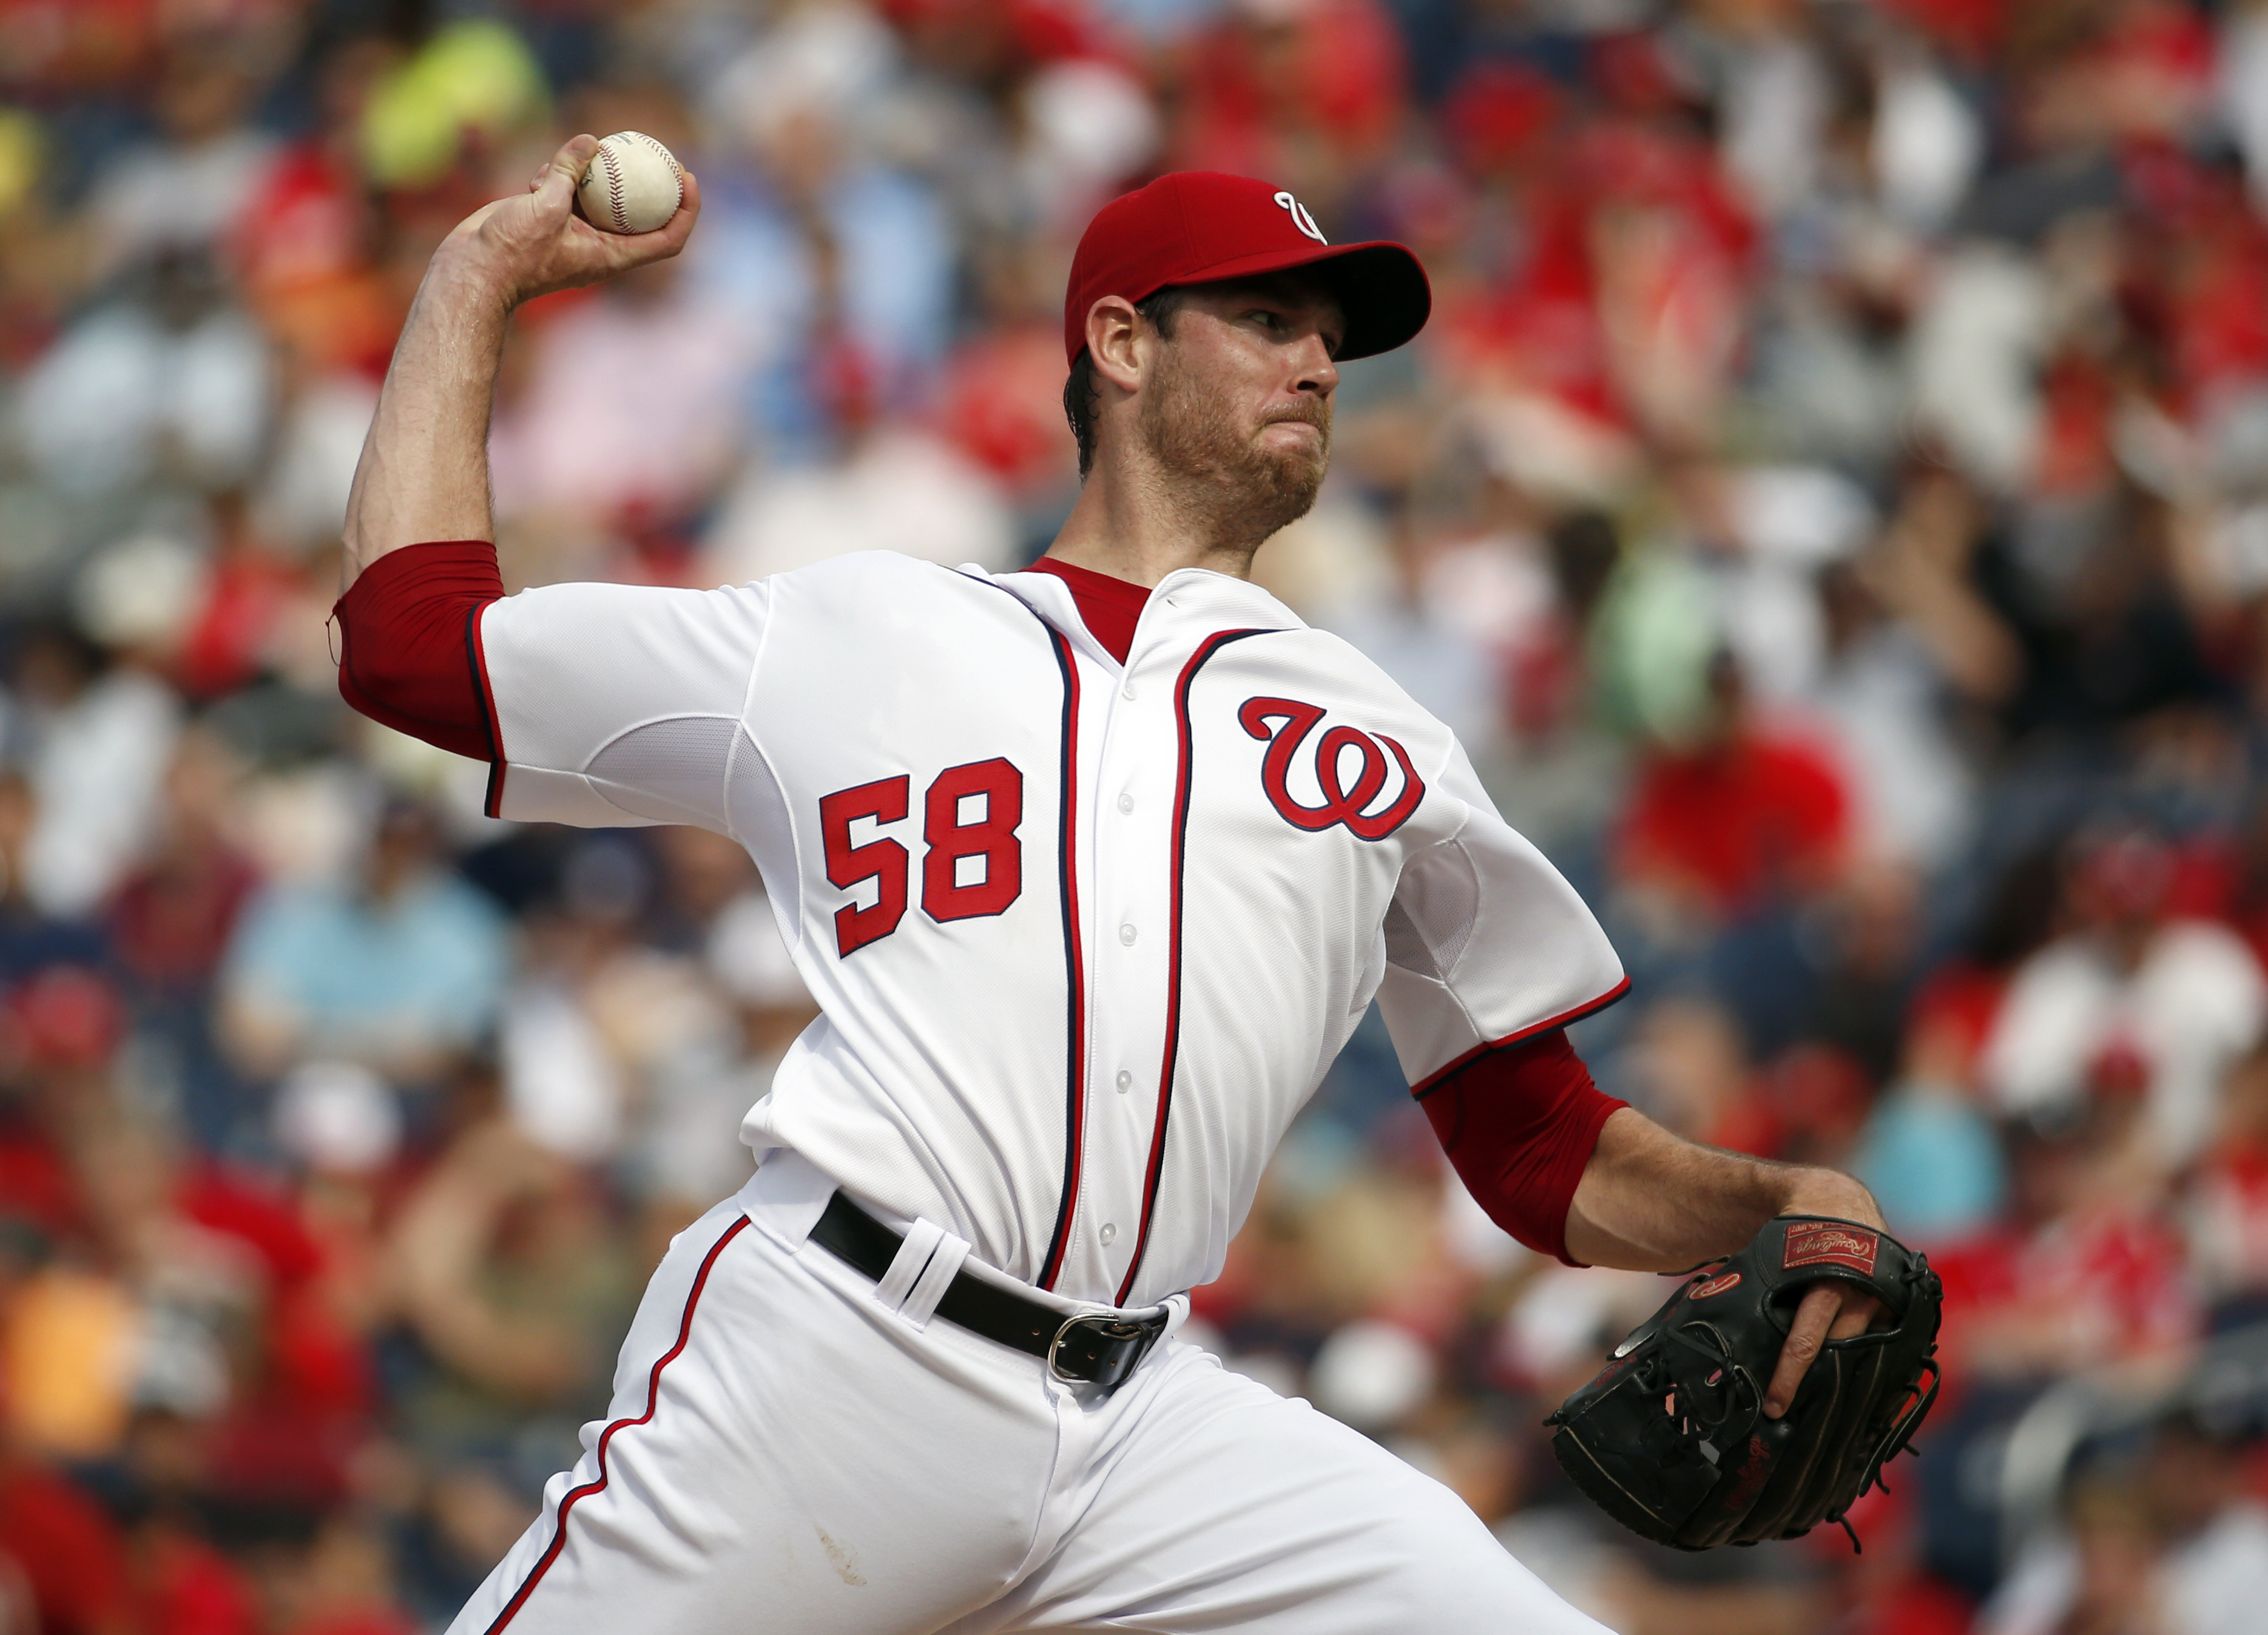 Washington Nationals starting pitcher Doug Fister throws during the third inning of a baseball game against the Atlanta Braves at Nationals Park, Thursday, June 25, 2015, in Washington. (AP Photo/Alex Brandon)